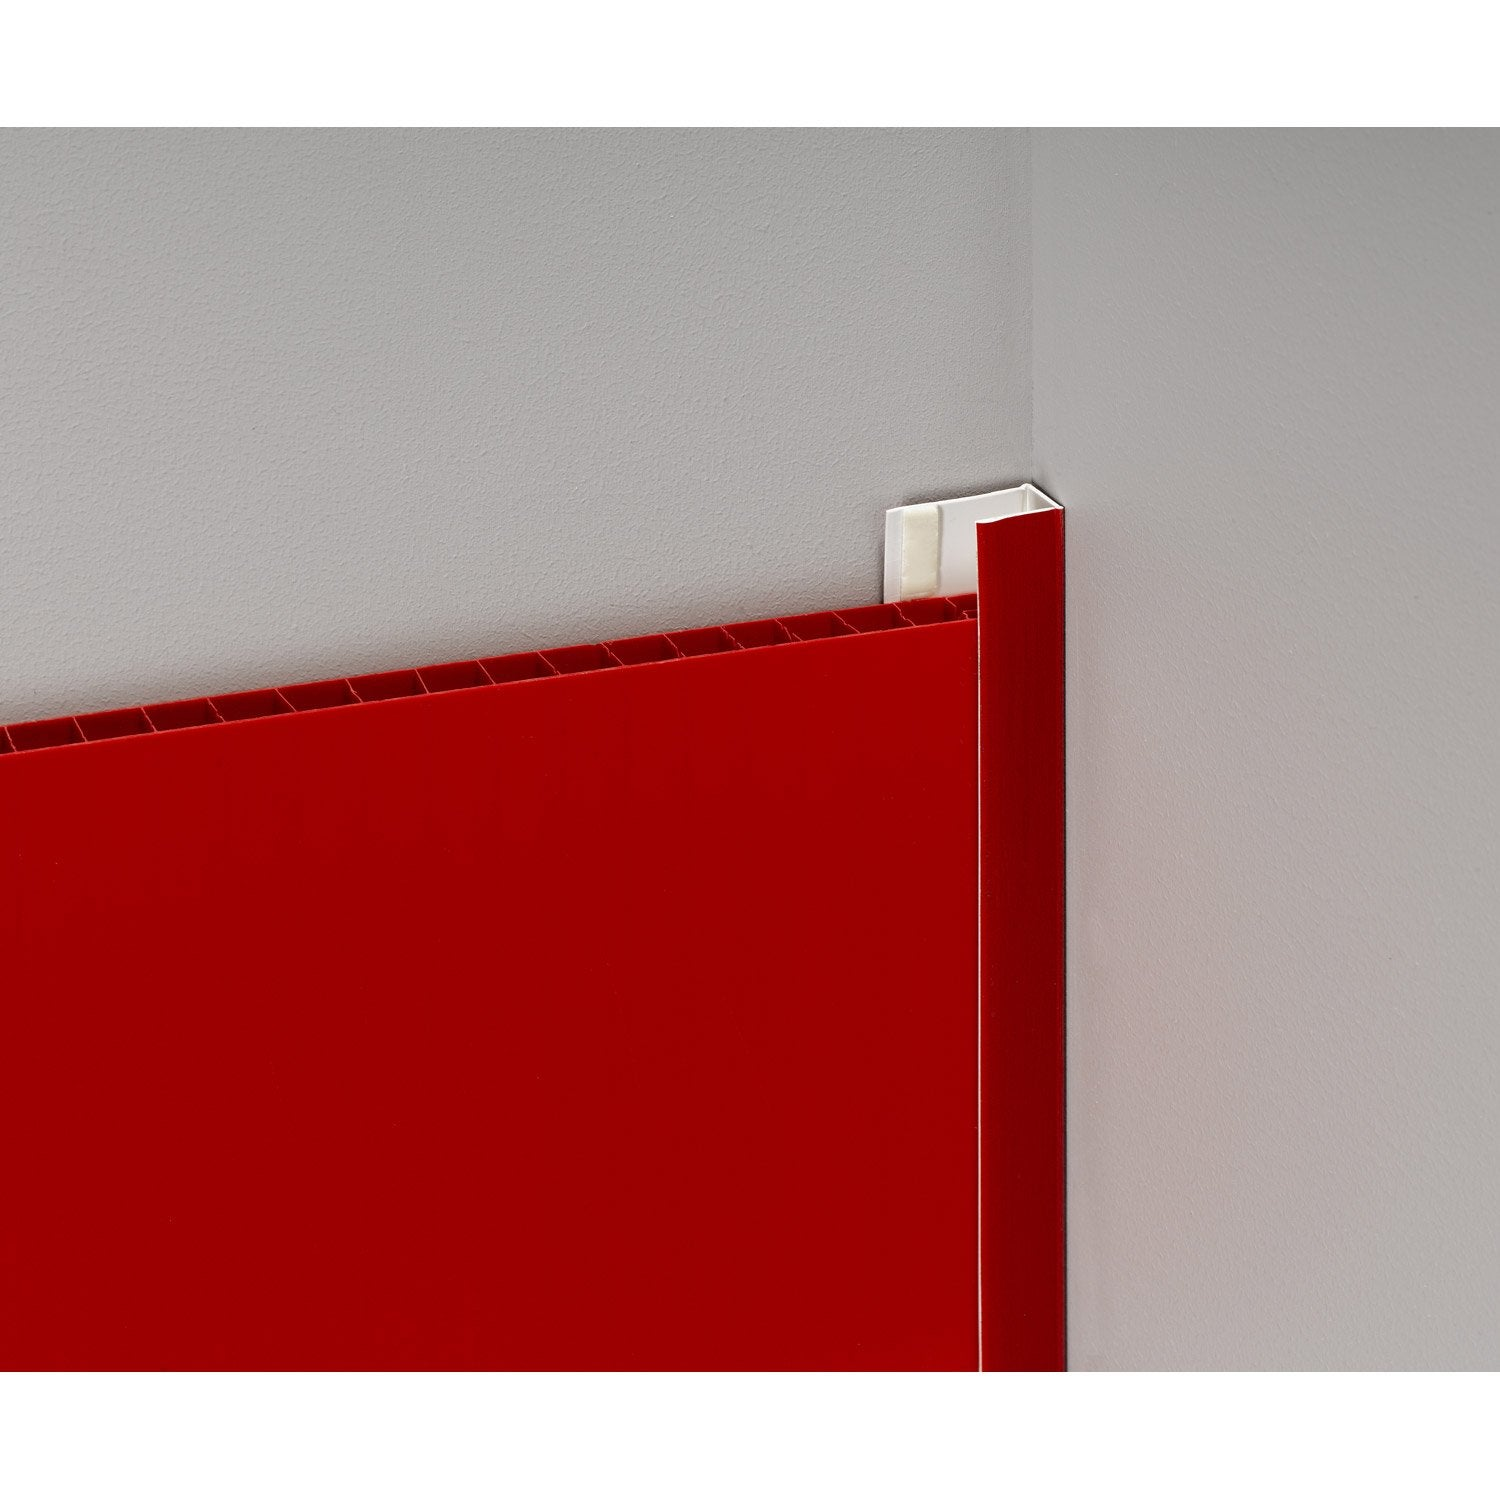 Profil de d part et finition pvc rouge leroy merlin - Canisse pvc leroy merlin ...